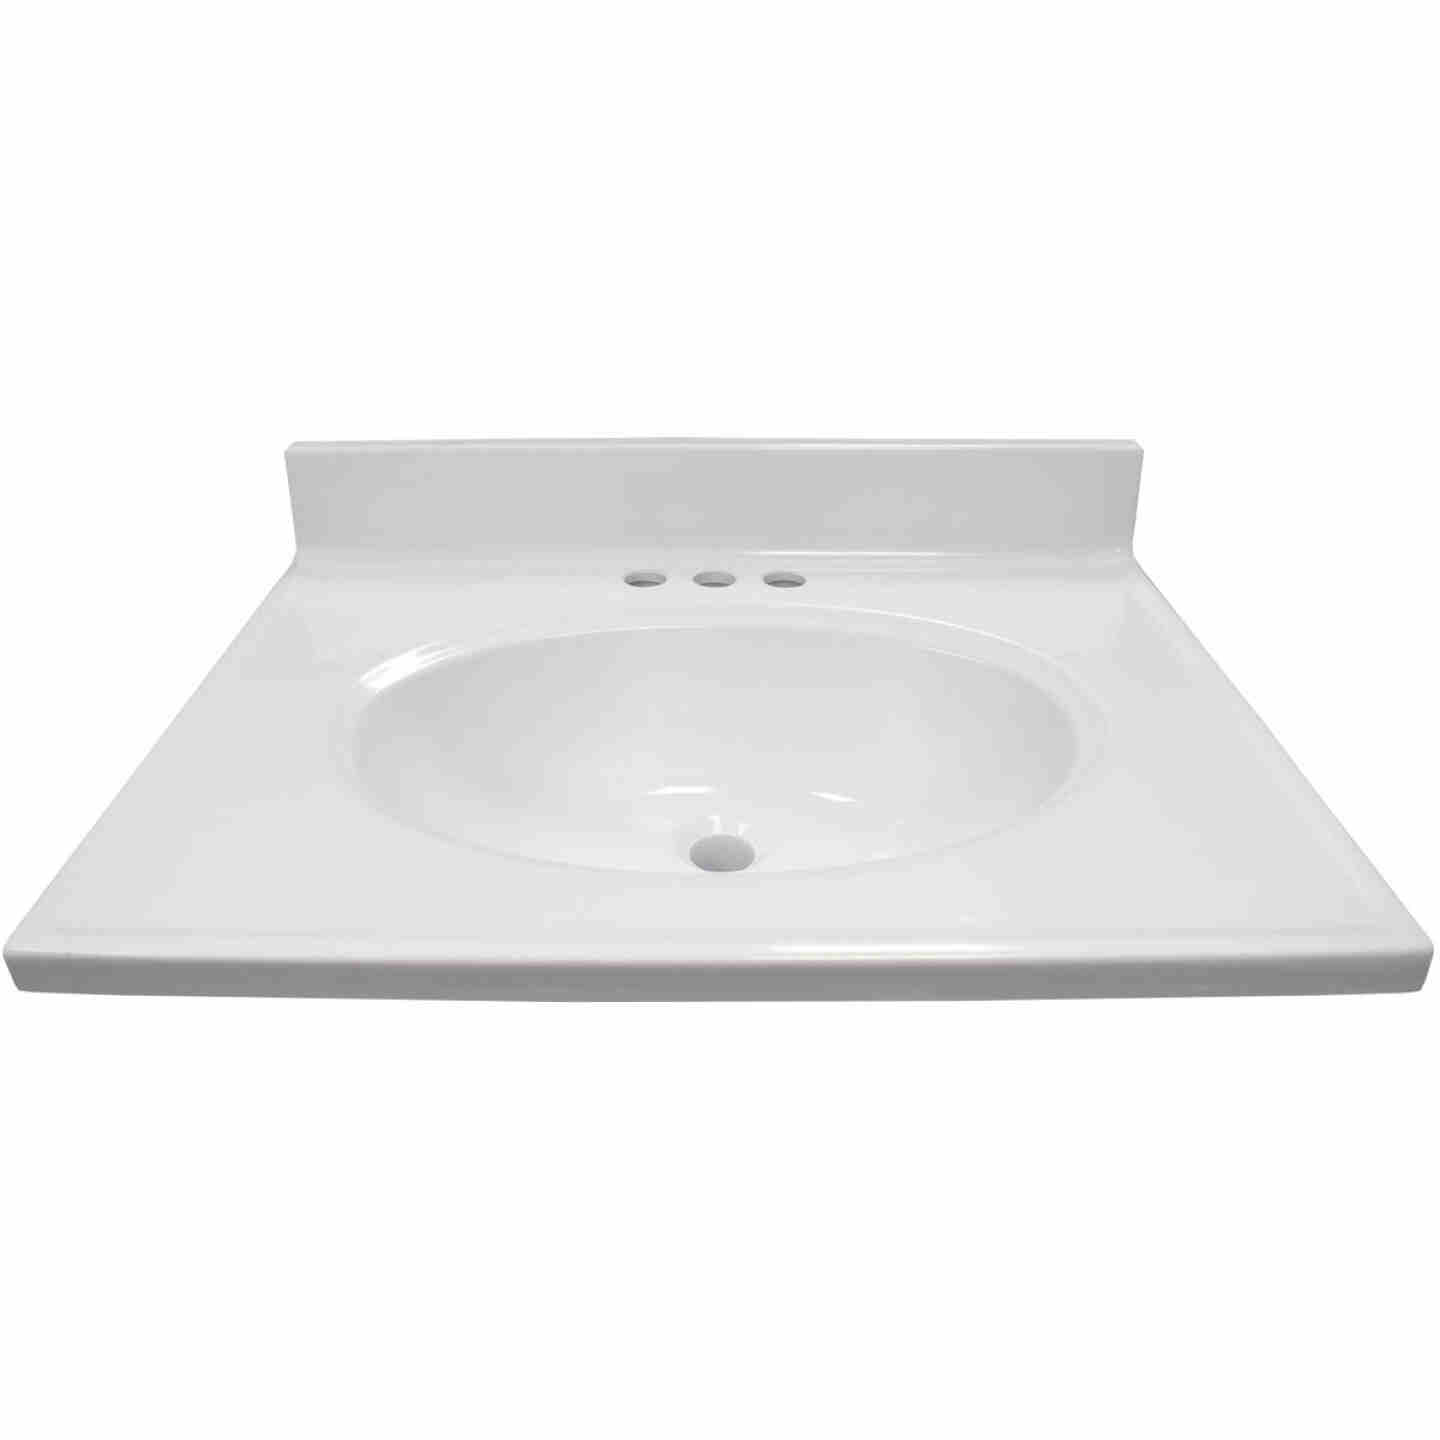 Modular Vanity Tops 25 In. W x 19 In. D Solid White Cultured Marble Non-Drip Edge Vanity Top with Oval Bowl Image 1